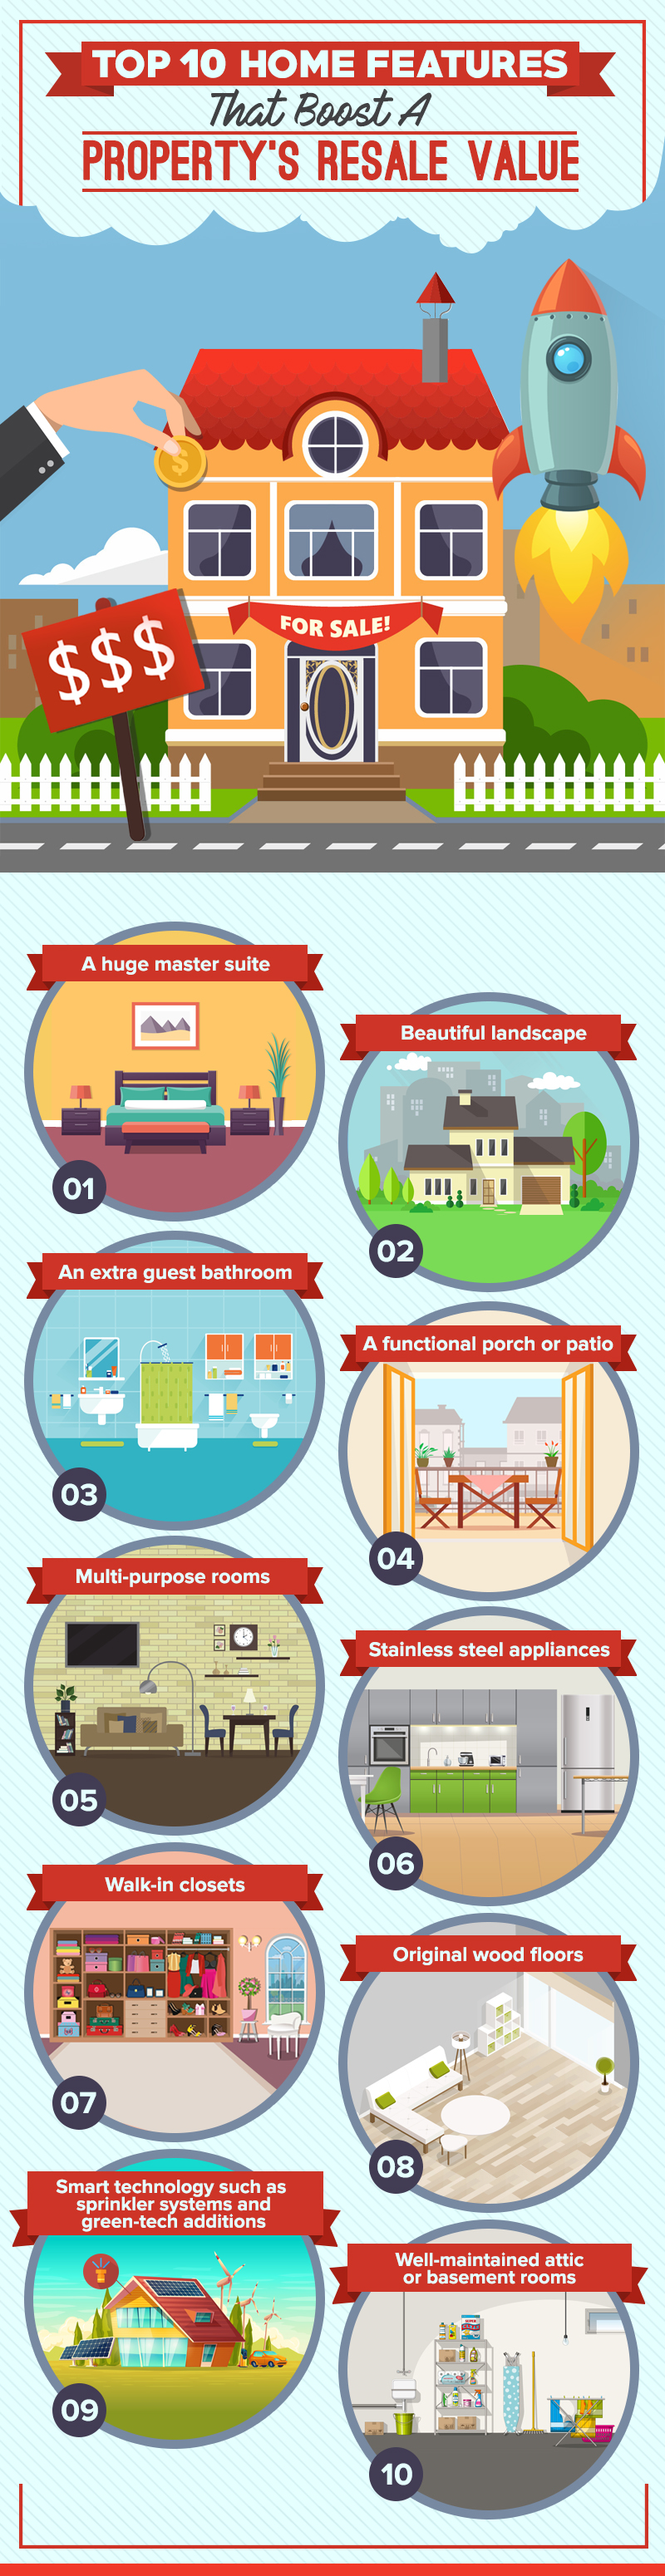 Top 10 Home Features That Boost A Property's Resale Value (1).jpg